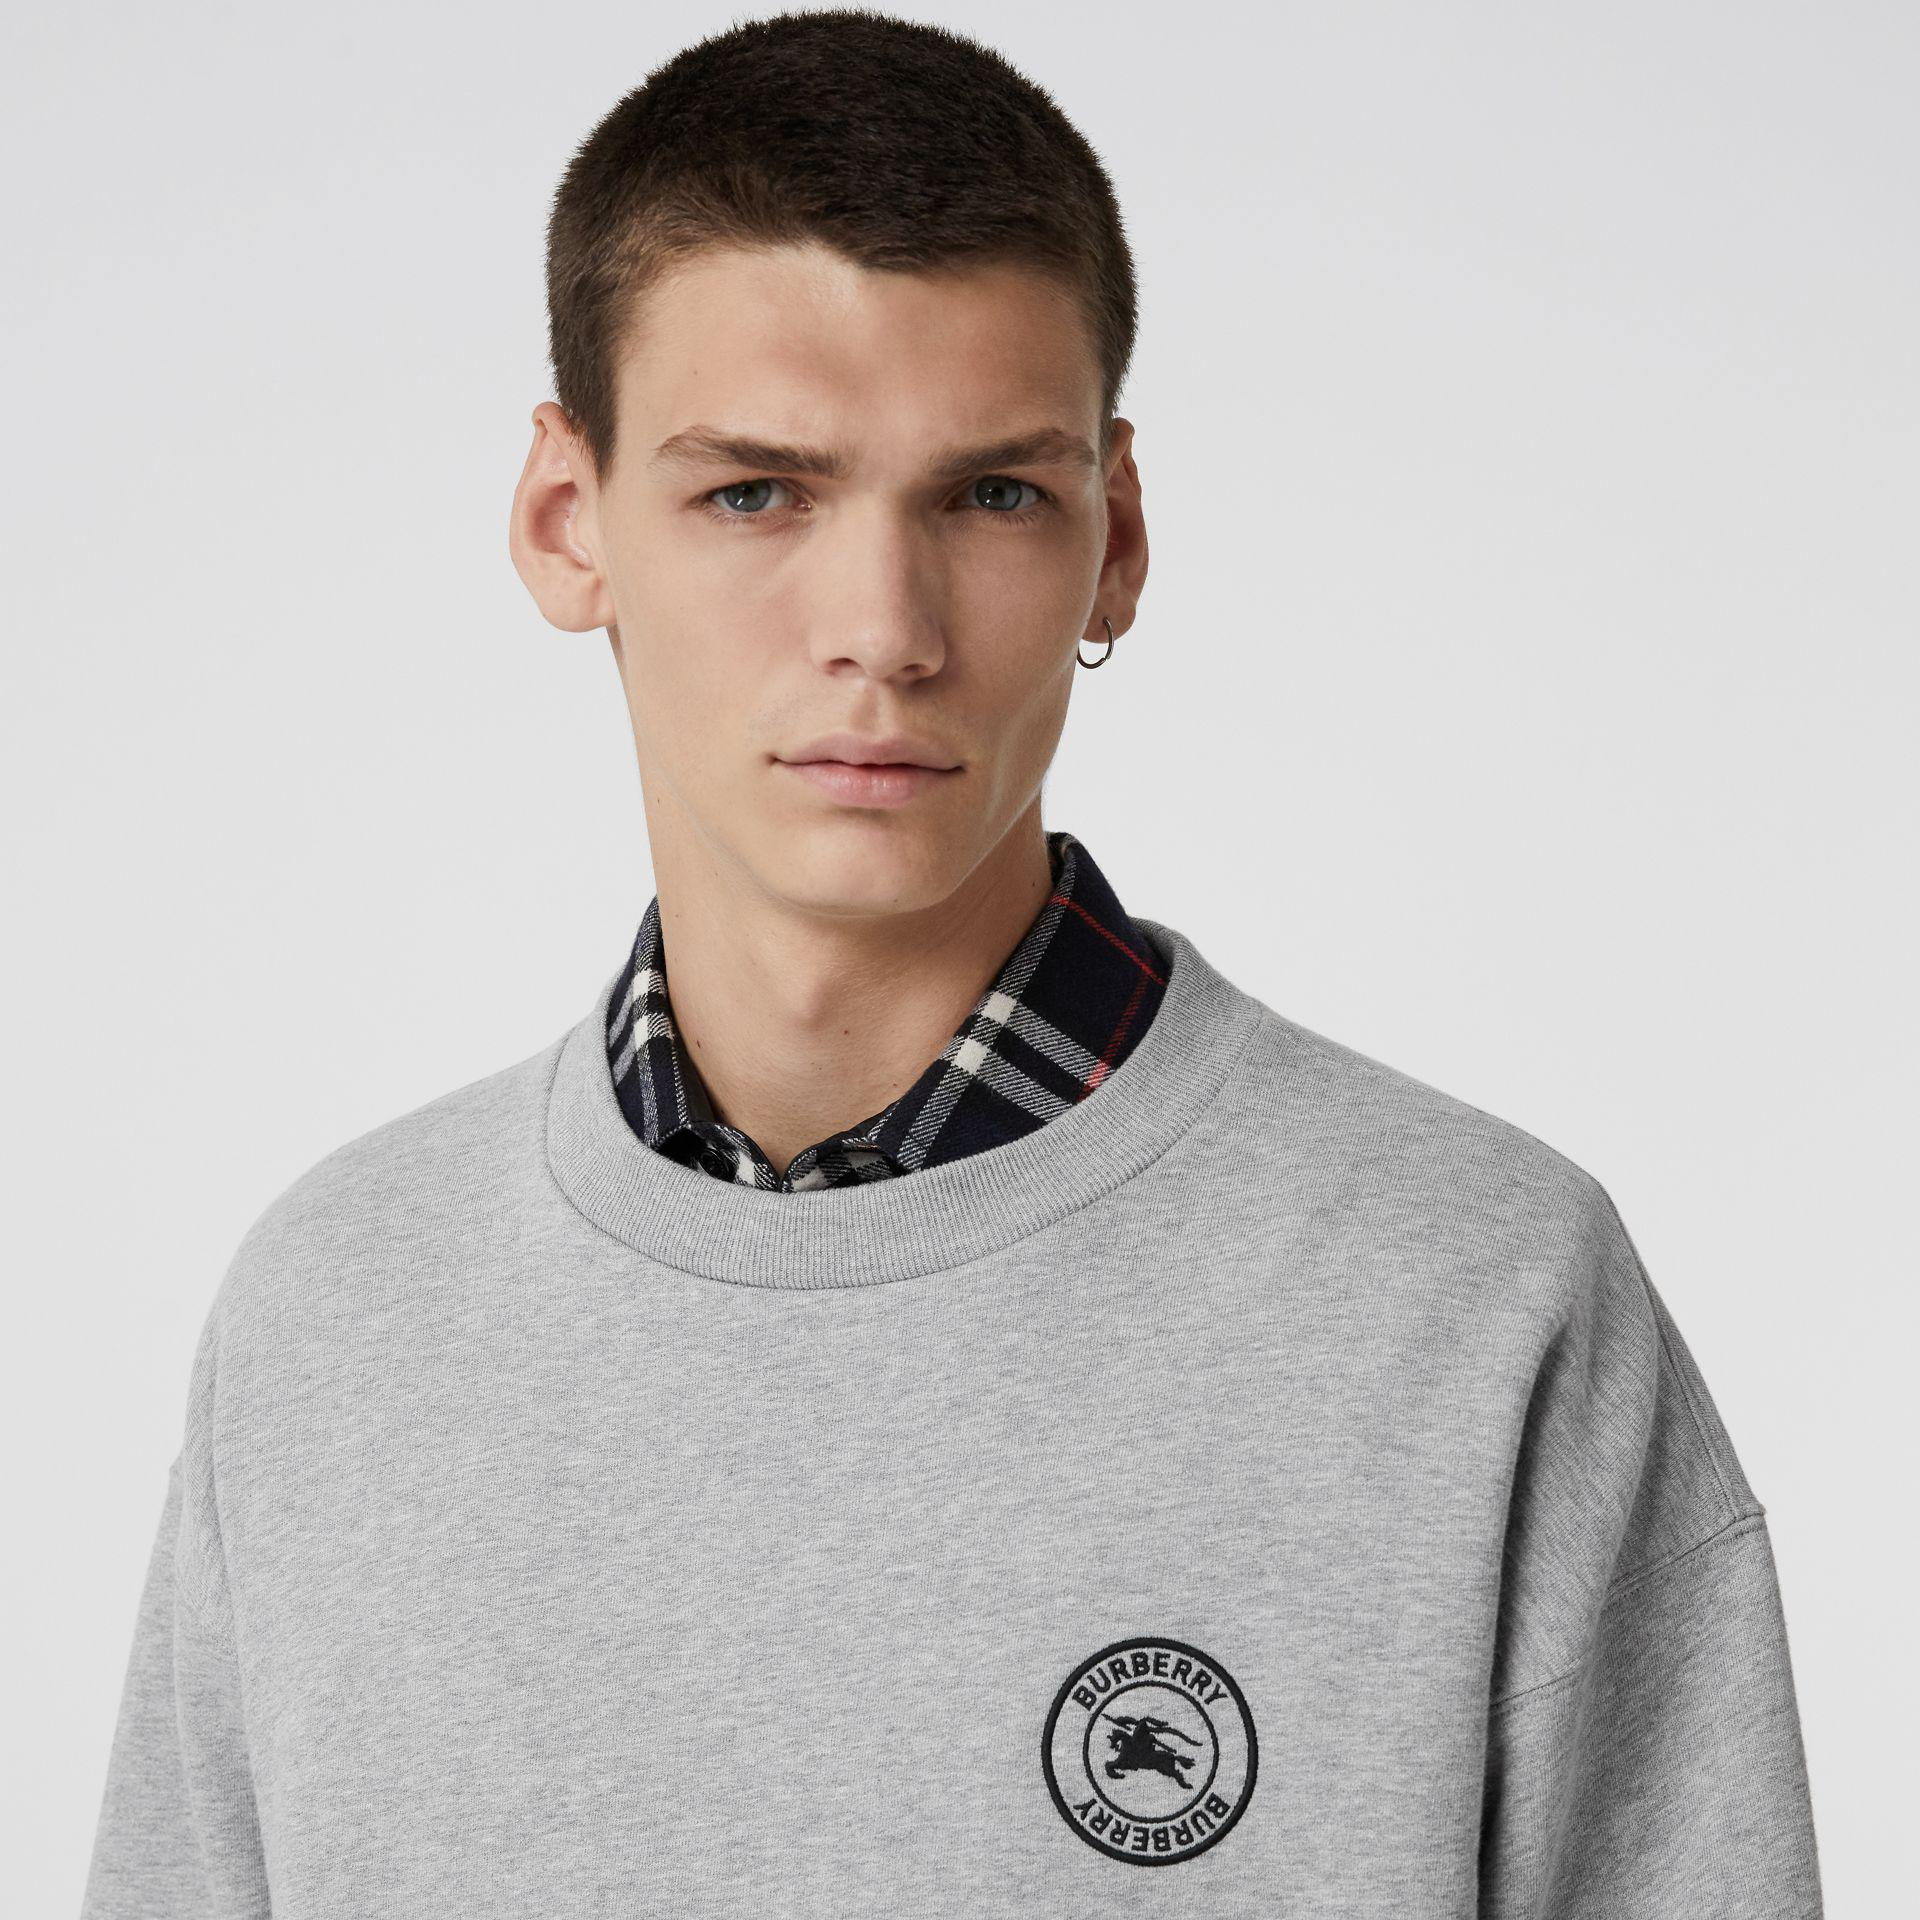 6200a6ac8 Burberry - Gray Embroidered Logo Jersey Sweatshirt for Men - Lyst. View  fullscreen